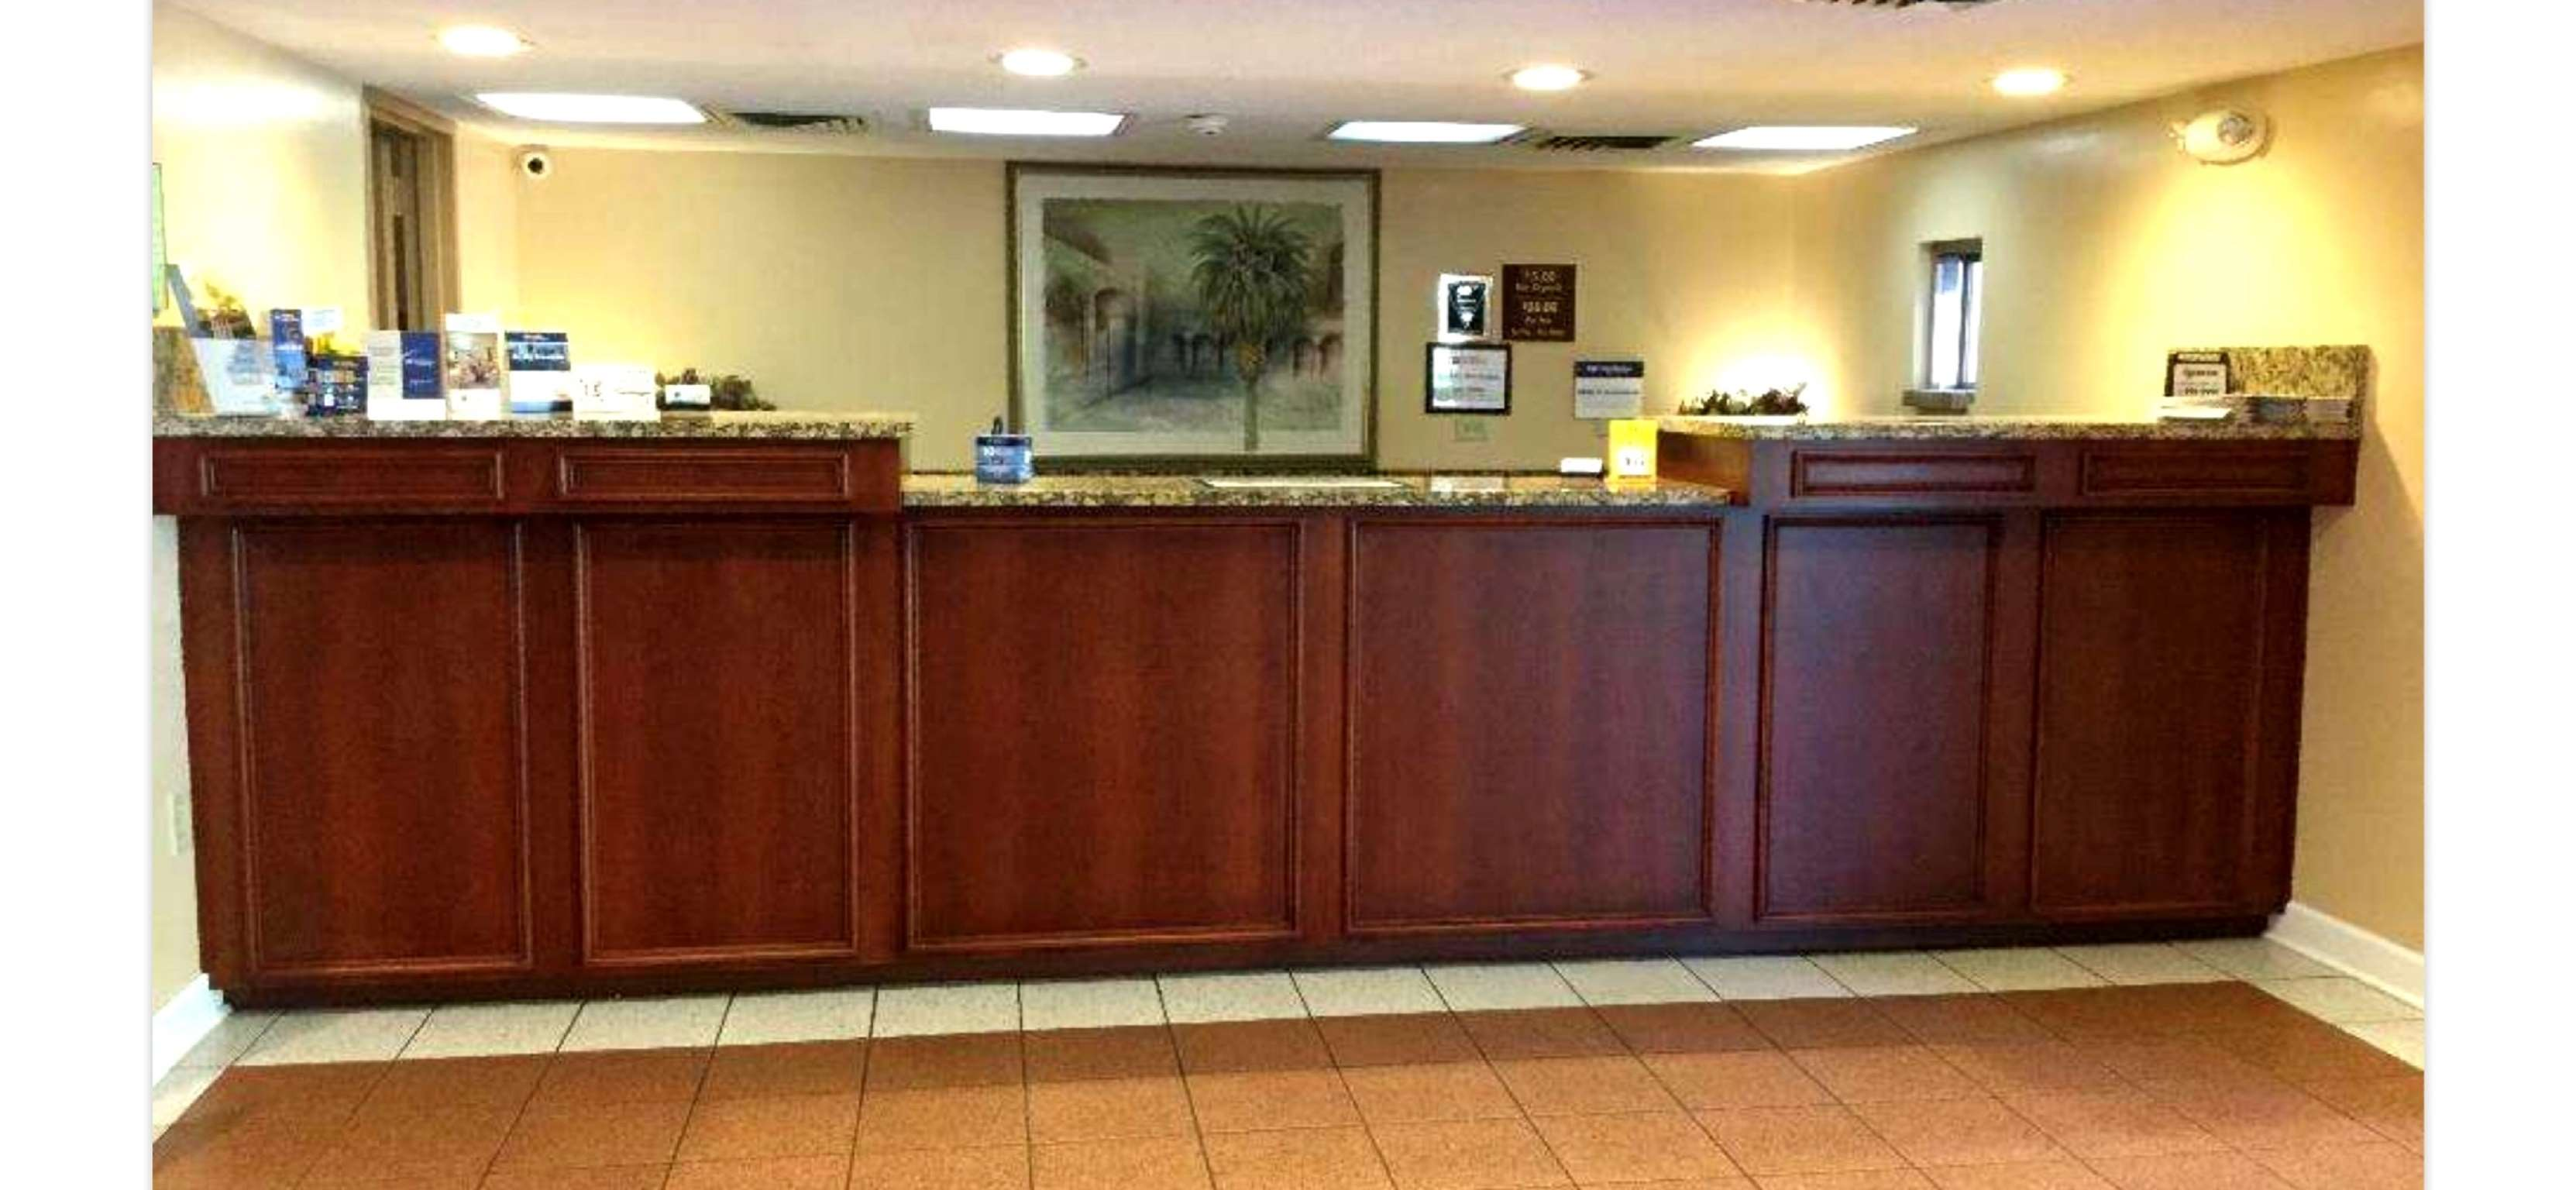 Best Western Tallahassee-Downtown Inn & Suites image 9